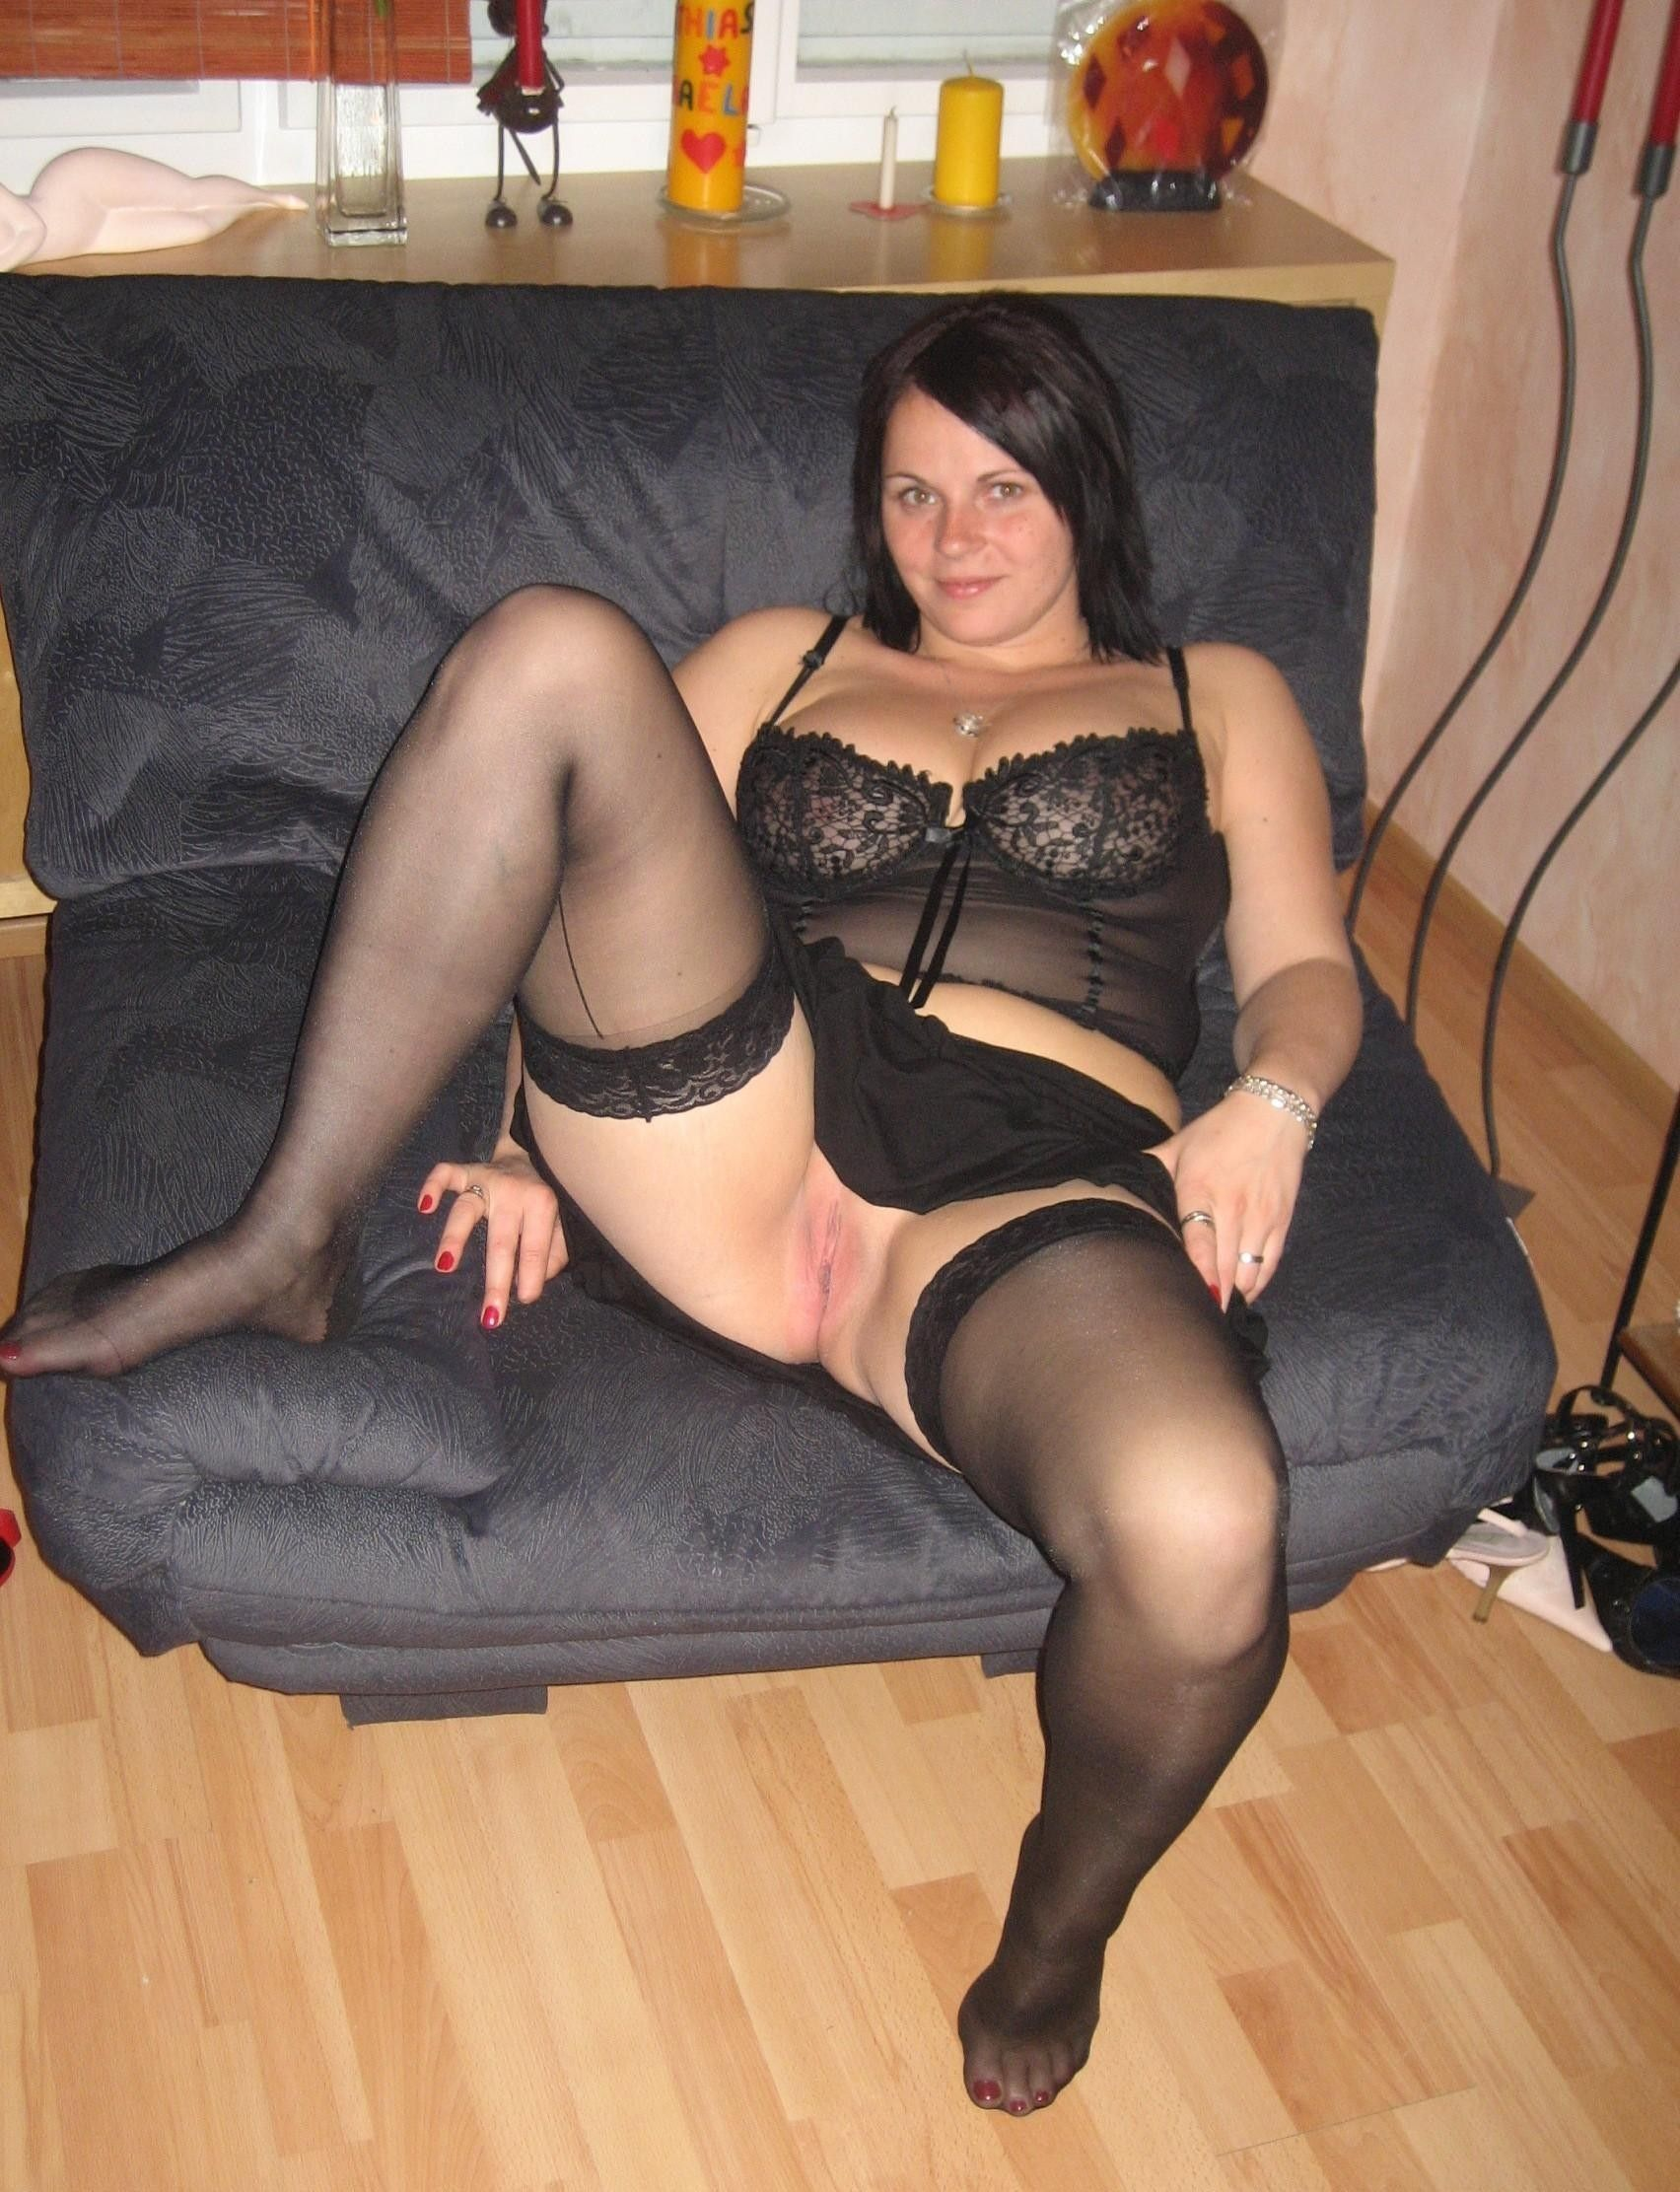 Bbw Porn Videos free videos of mature legs in hose - sex archive. comments: 5